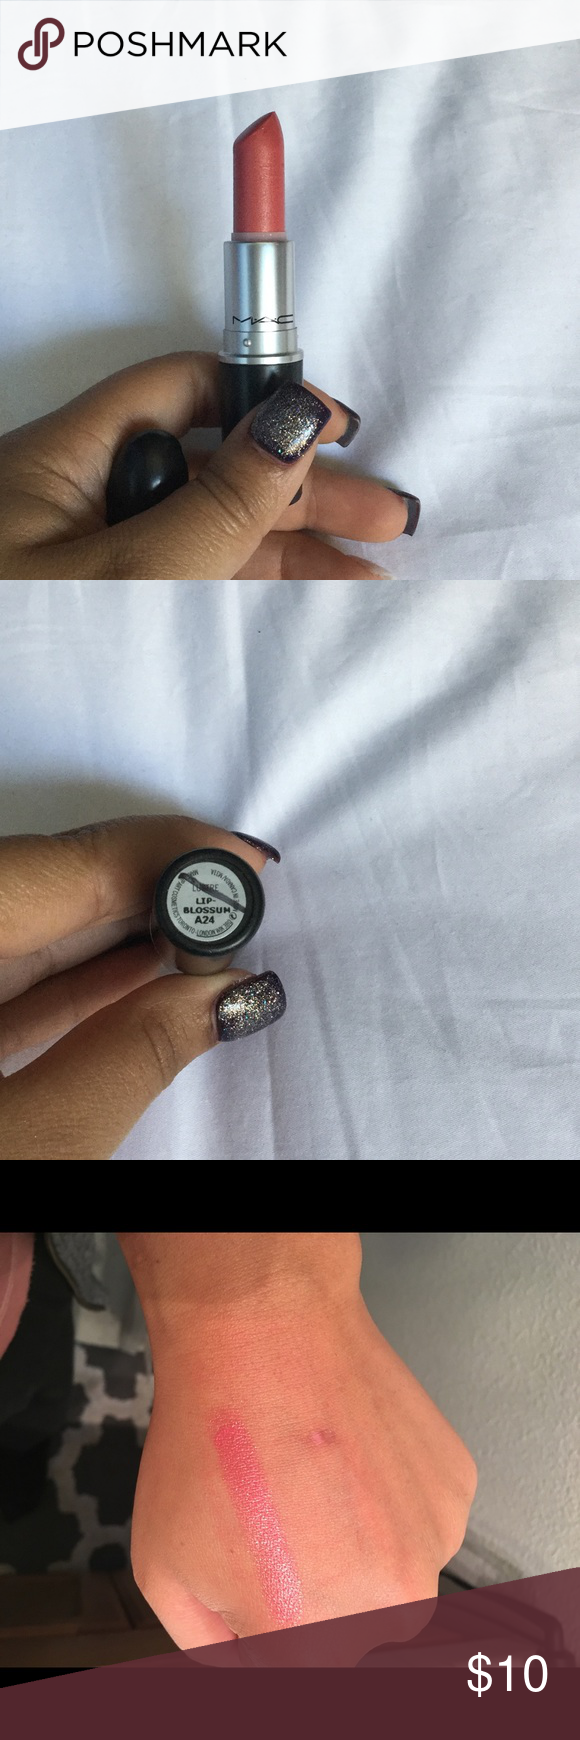 """MAC lipstick MAC lustre lipstick in """"lipblossum"""" used only once to make the color swatch on my hand. Cleaned and disinfected with MAC makeup wipes. Slash on the bottom means that it's final sale, not returnable to a MAC store. MAC Cosmetics Makeup Lipstick"""